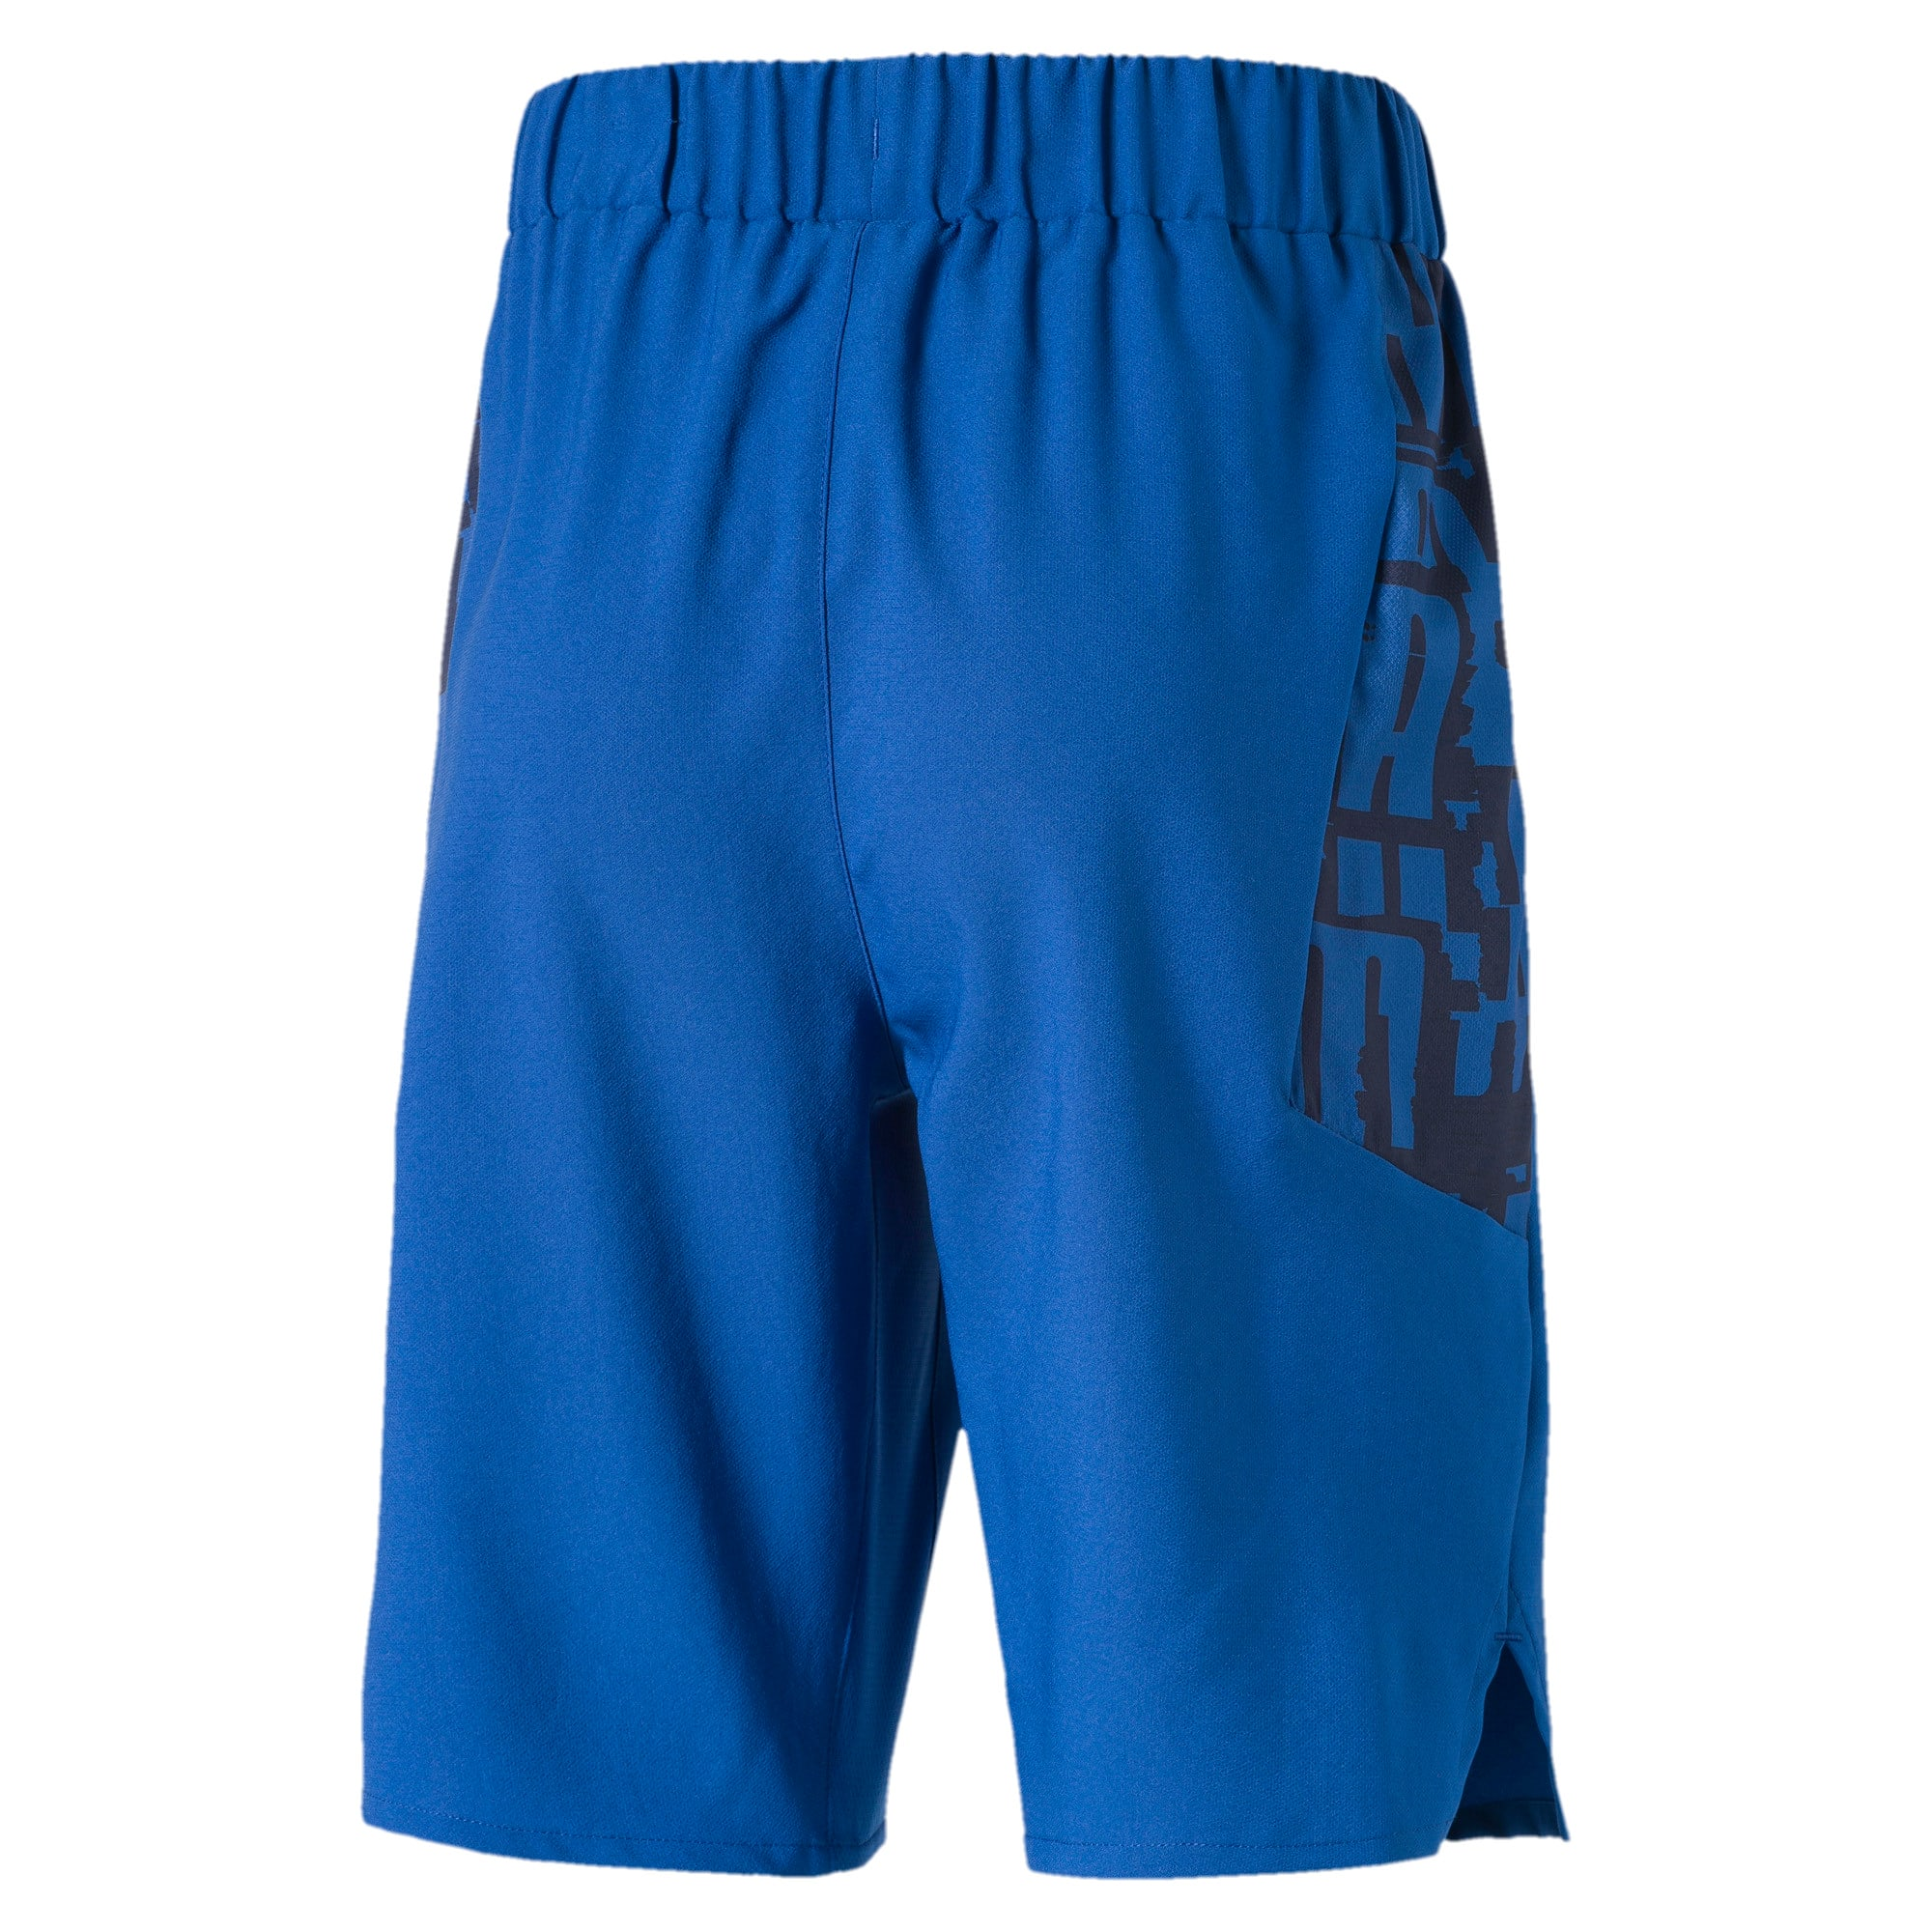 Active Sports Woven Boys' Shorts, Galaxy Blue, large-IND